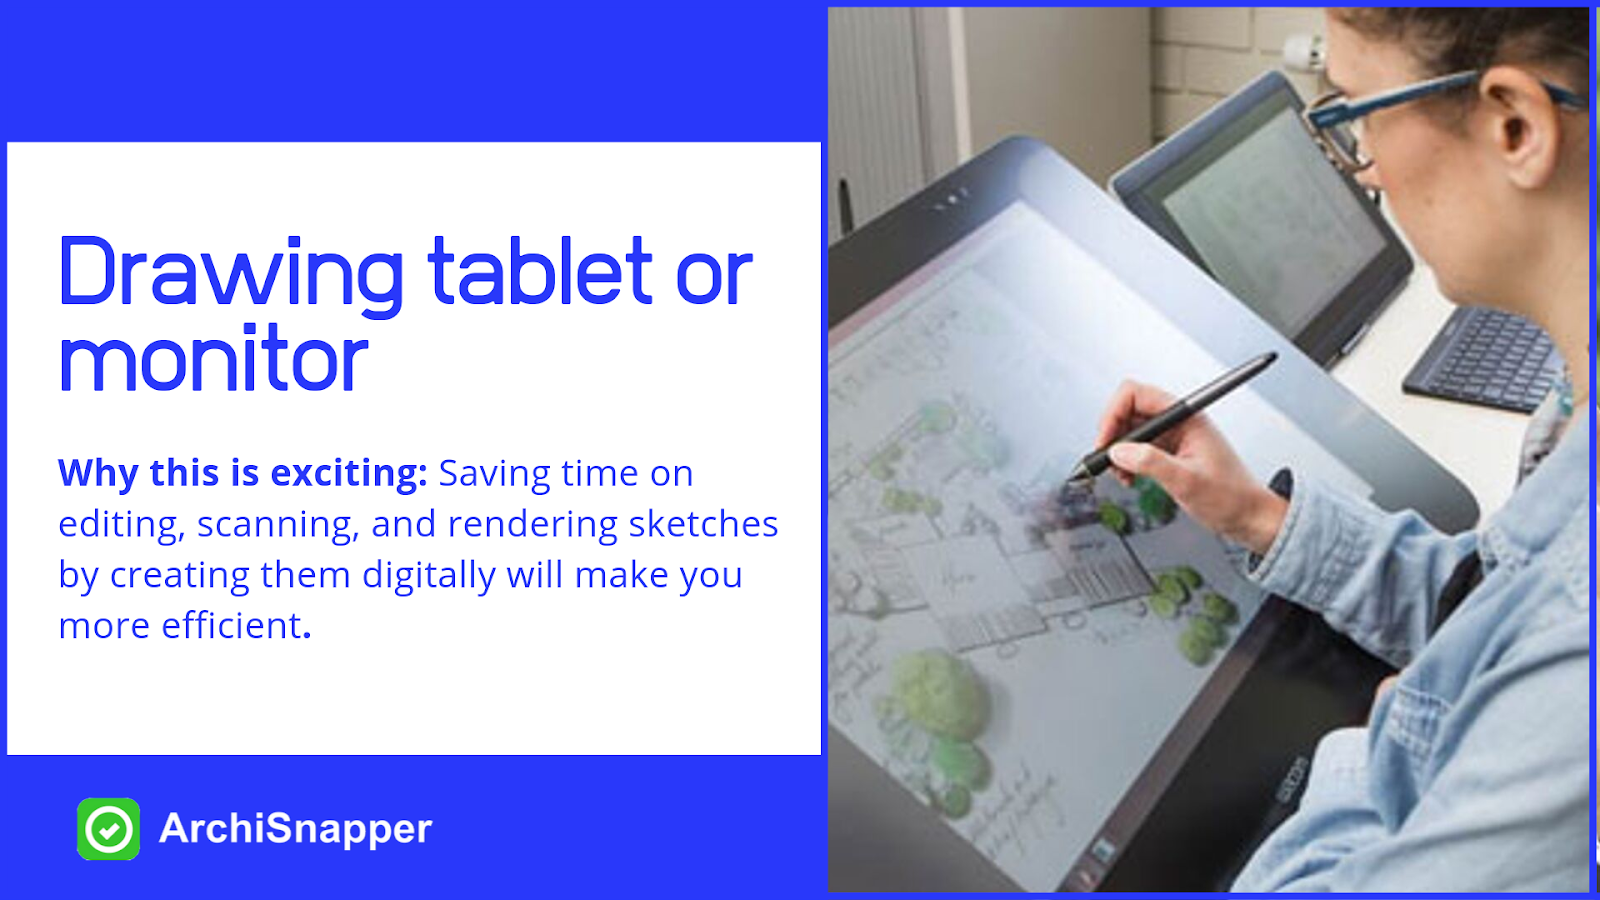 Drawing tablet or monitor | List of the 15 must-have tech tools and accessories ideal for architects presented by Archisnapper.